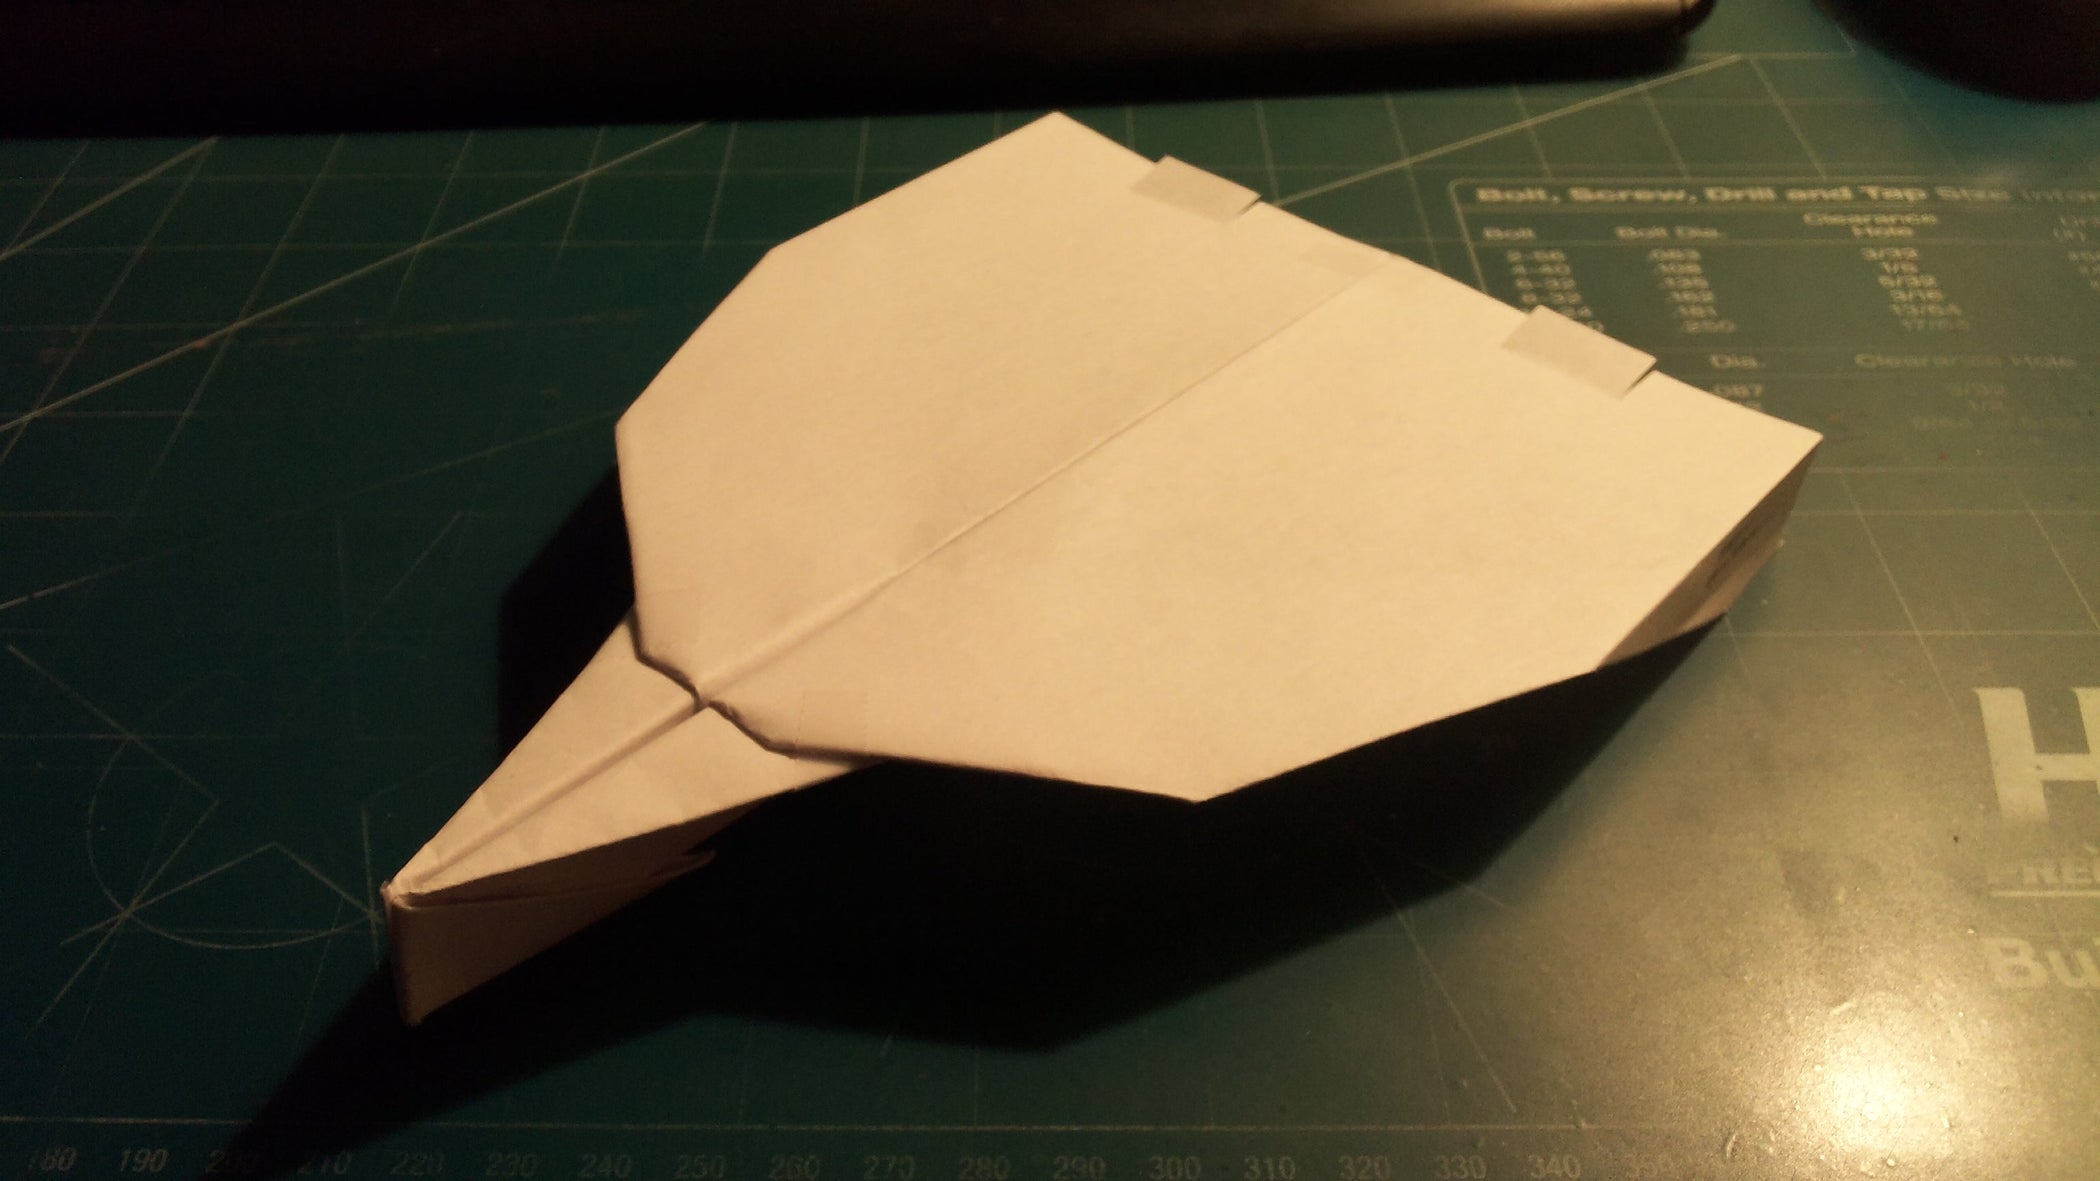 How to Make the UltraSabre Paper Airplane